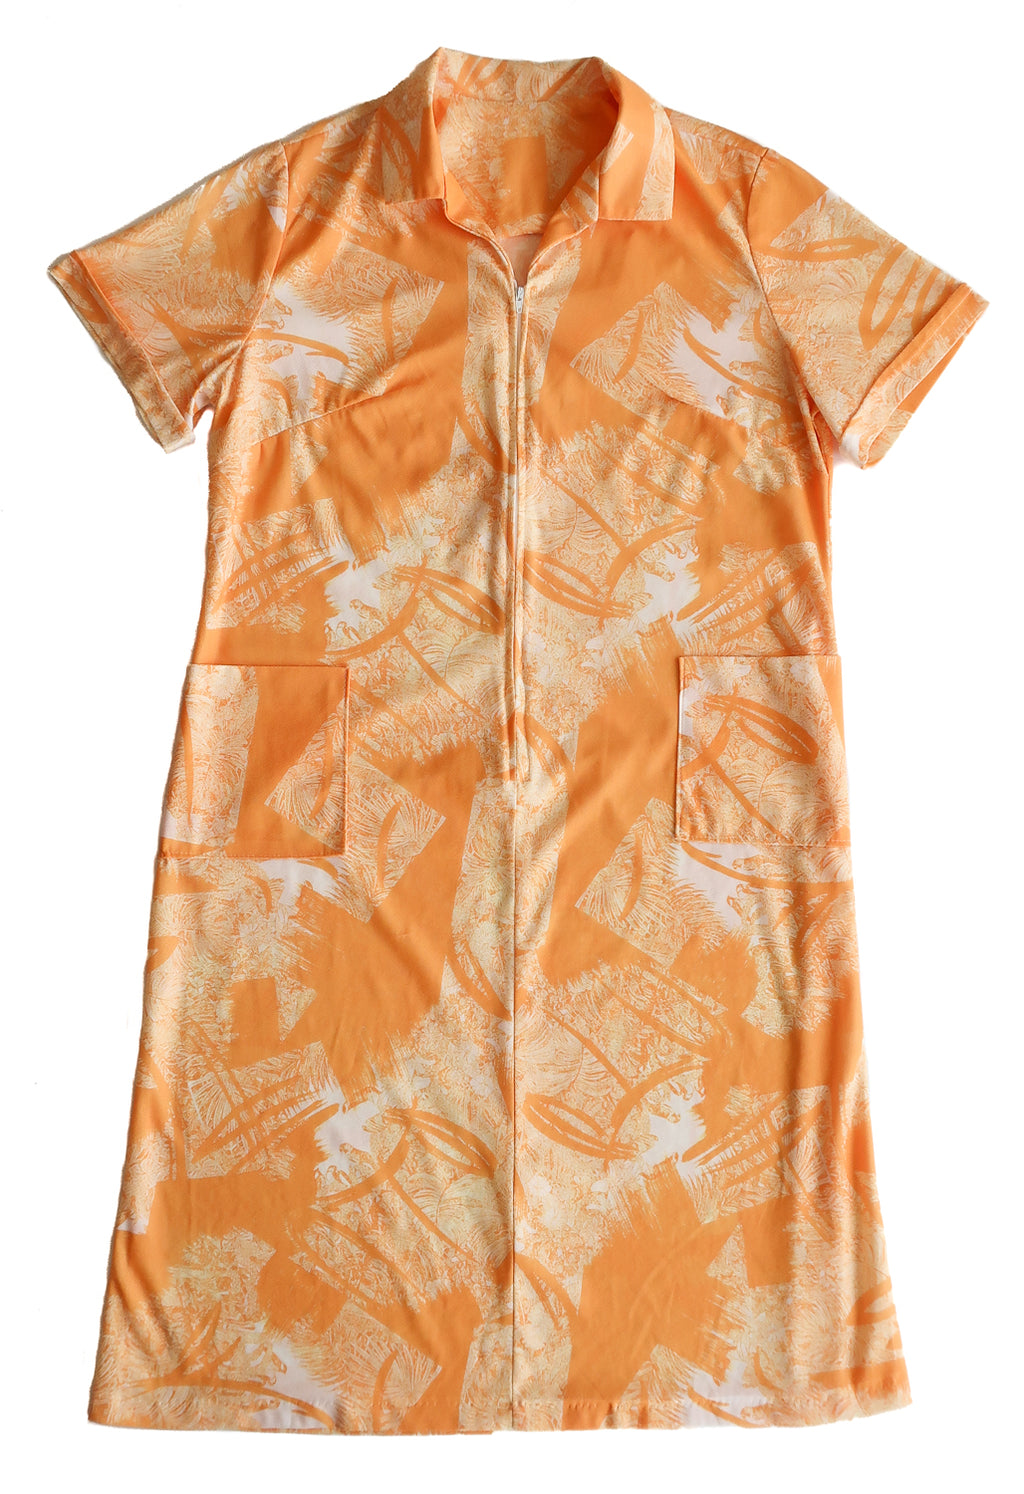 Second Room Shop Vintage. Shop Vintage, Shop Sustainable. Vintage 1970s semi sheer orange dress, with 3/4 zipper down front. Short sleeves, knee/midi length, with two front patch pockets. Dress is slightly sheer, unlined, and has a great abstract leafy pattern.